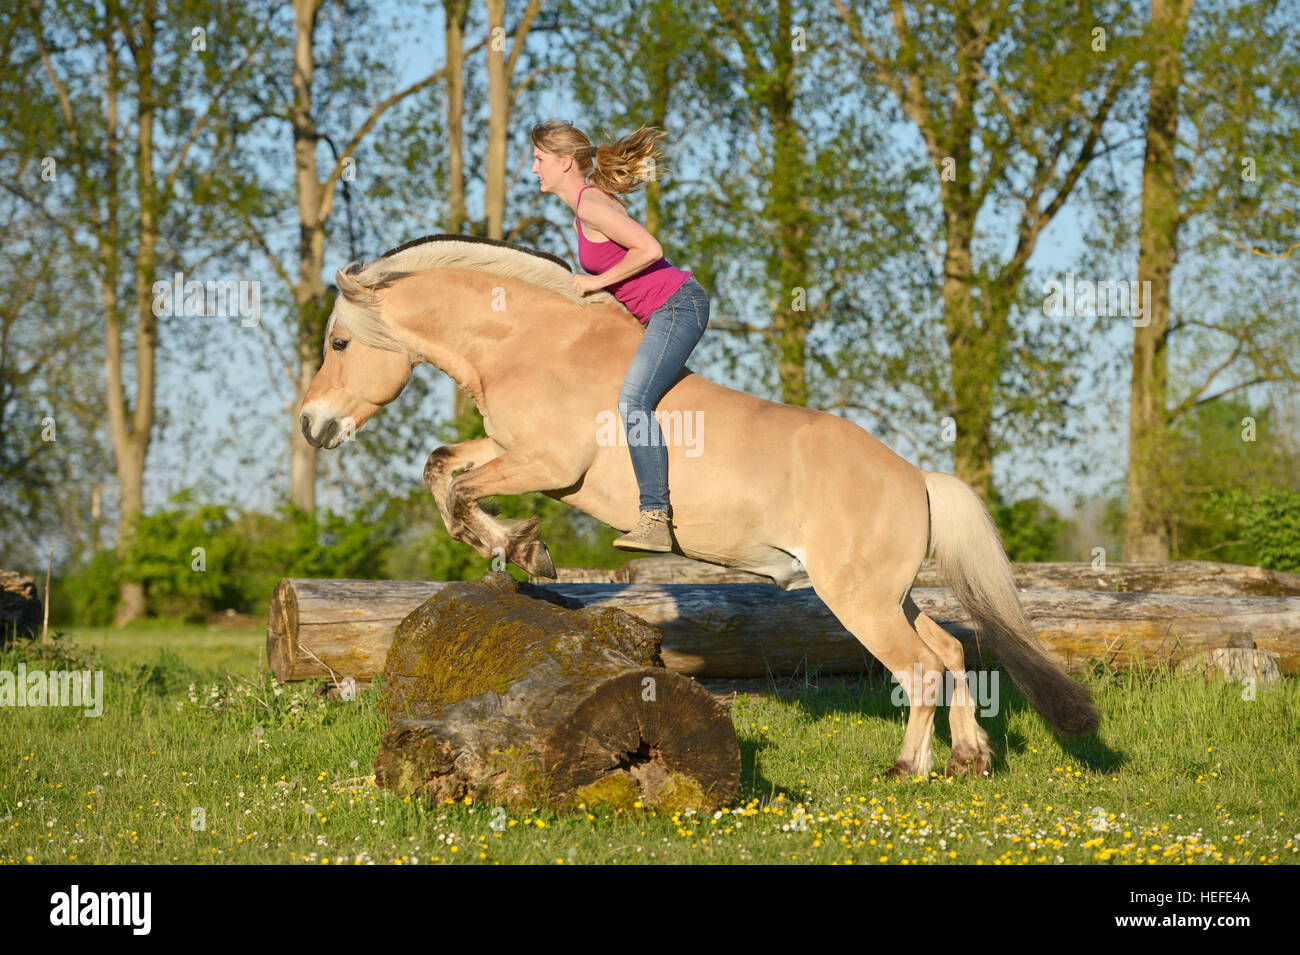 Young woman riding bareback and bridleless on a Norwegian Fjord horse stallion jumping over a tree log - Stock Image